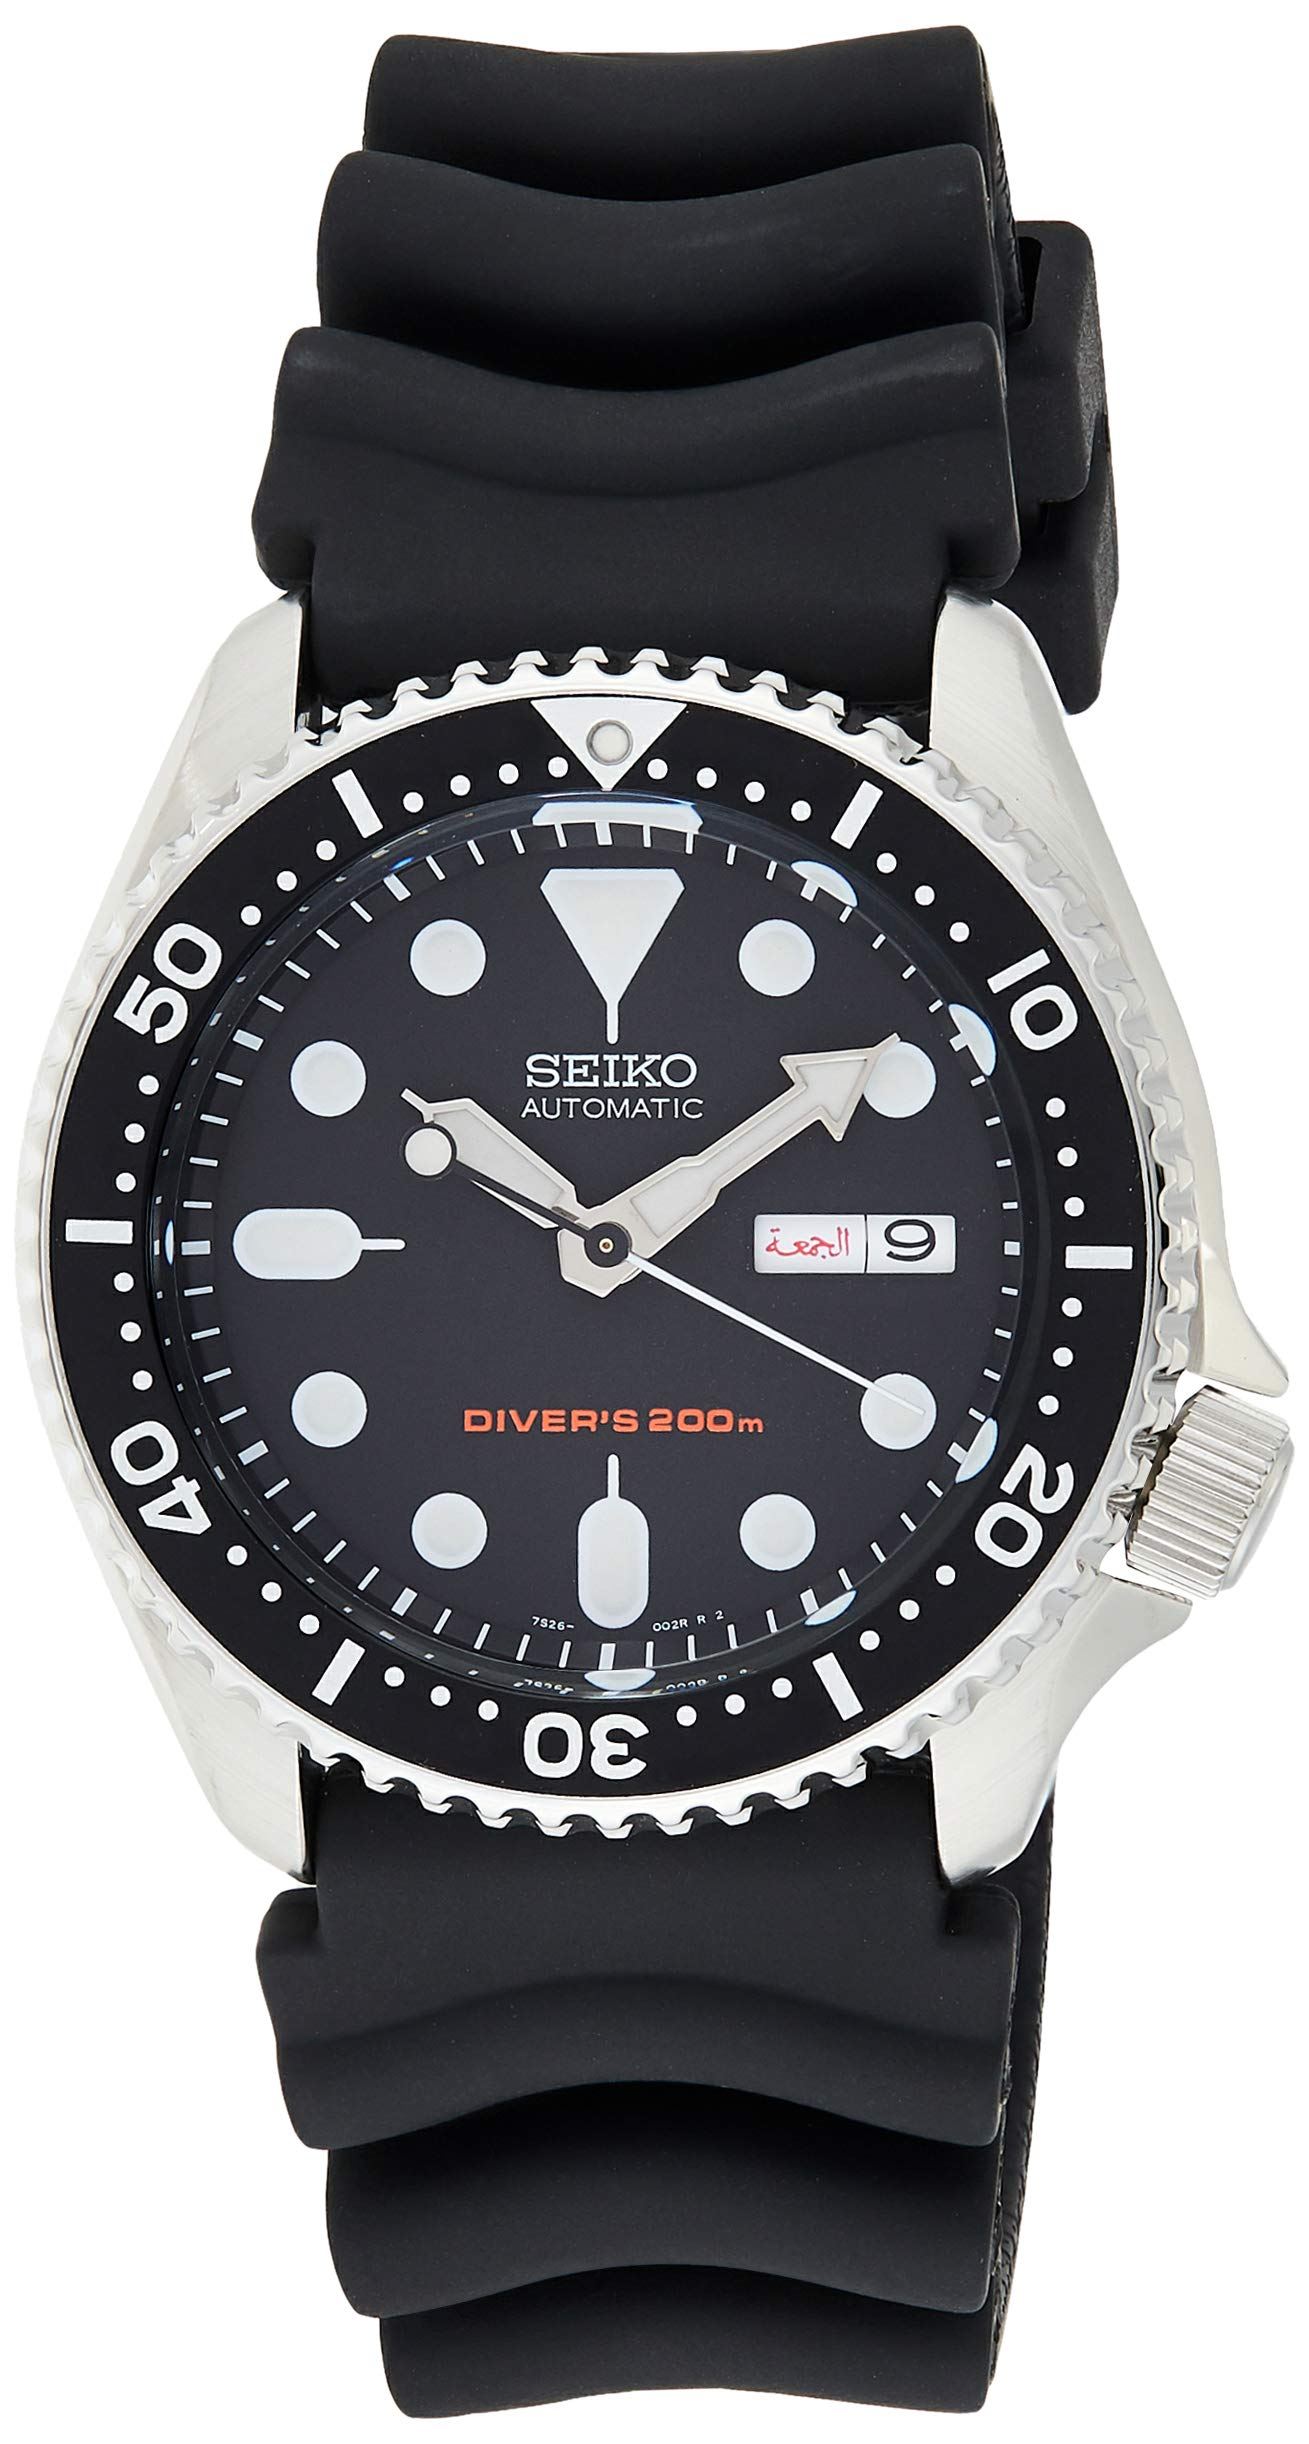 Seiko Men's Analogue Automatic Watch with Rubber Strap SKX007K1